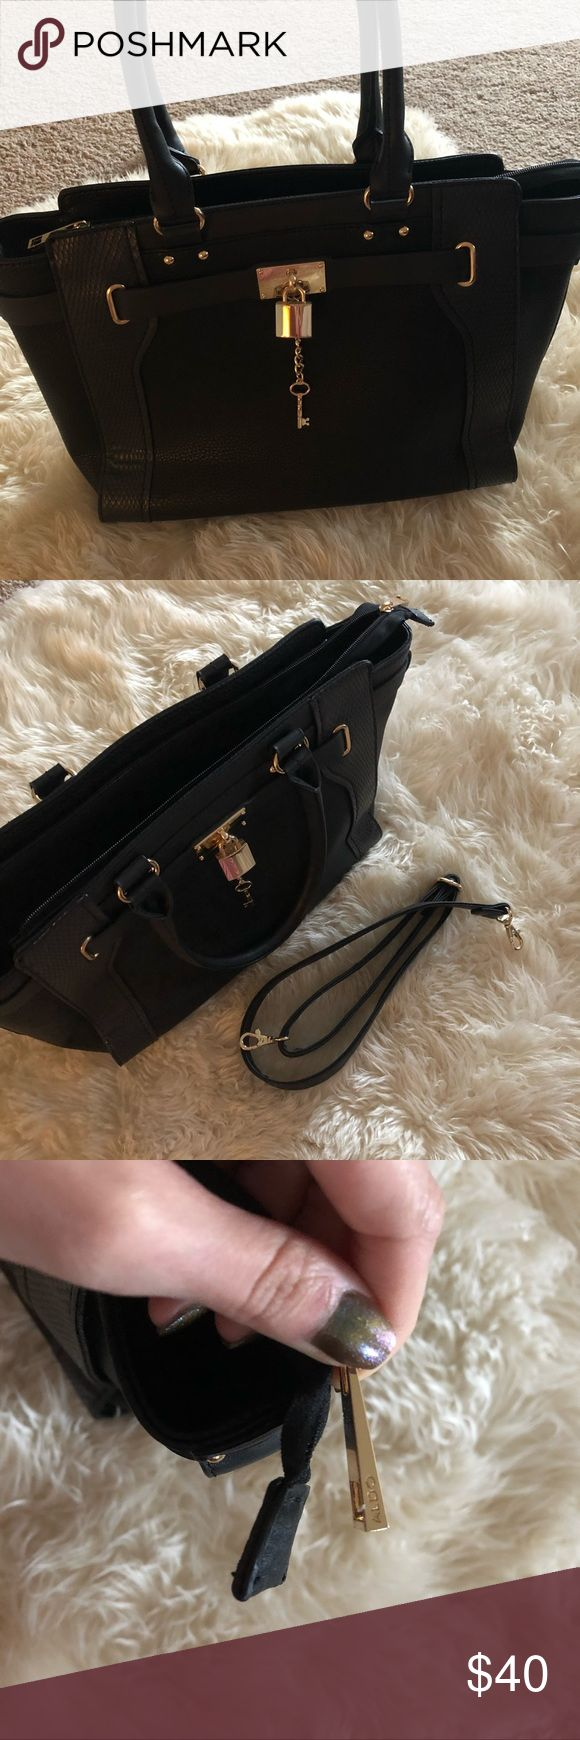 Aldo tote bag Black faux leather Aldo Tote bag! Hold hardware, roomy interior with pockets. Removable long shoulder strap. Hardly used! Aldo Bags Totes